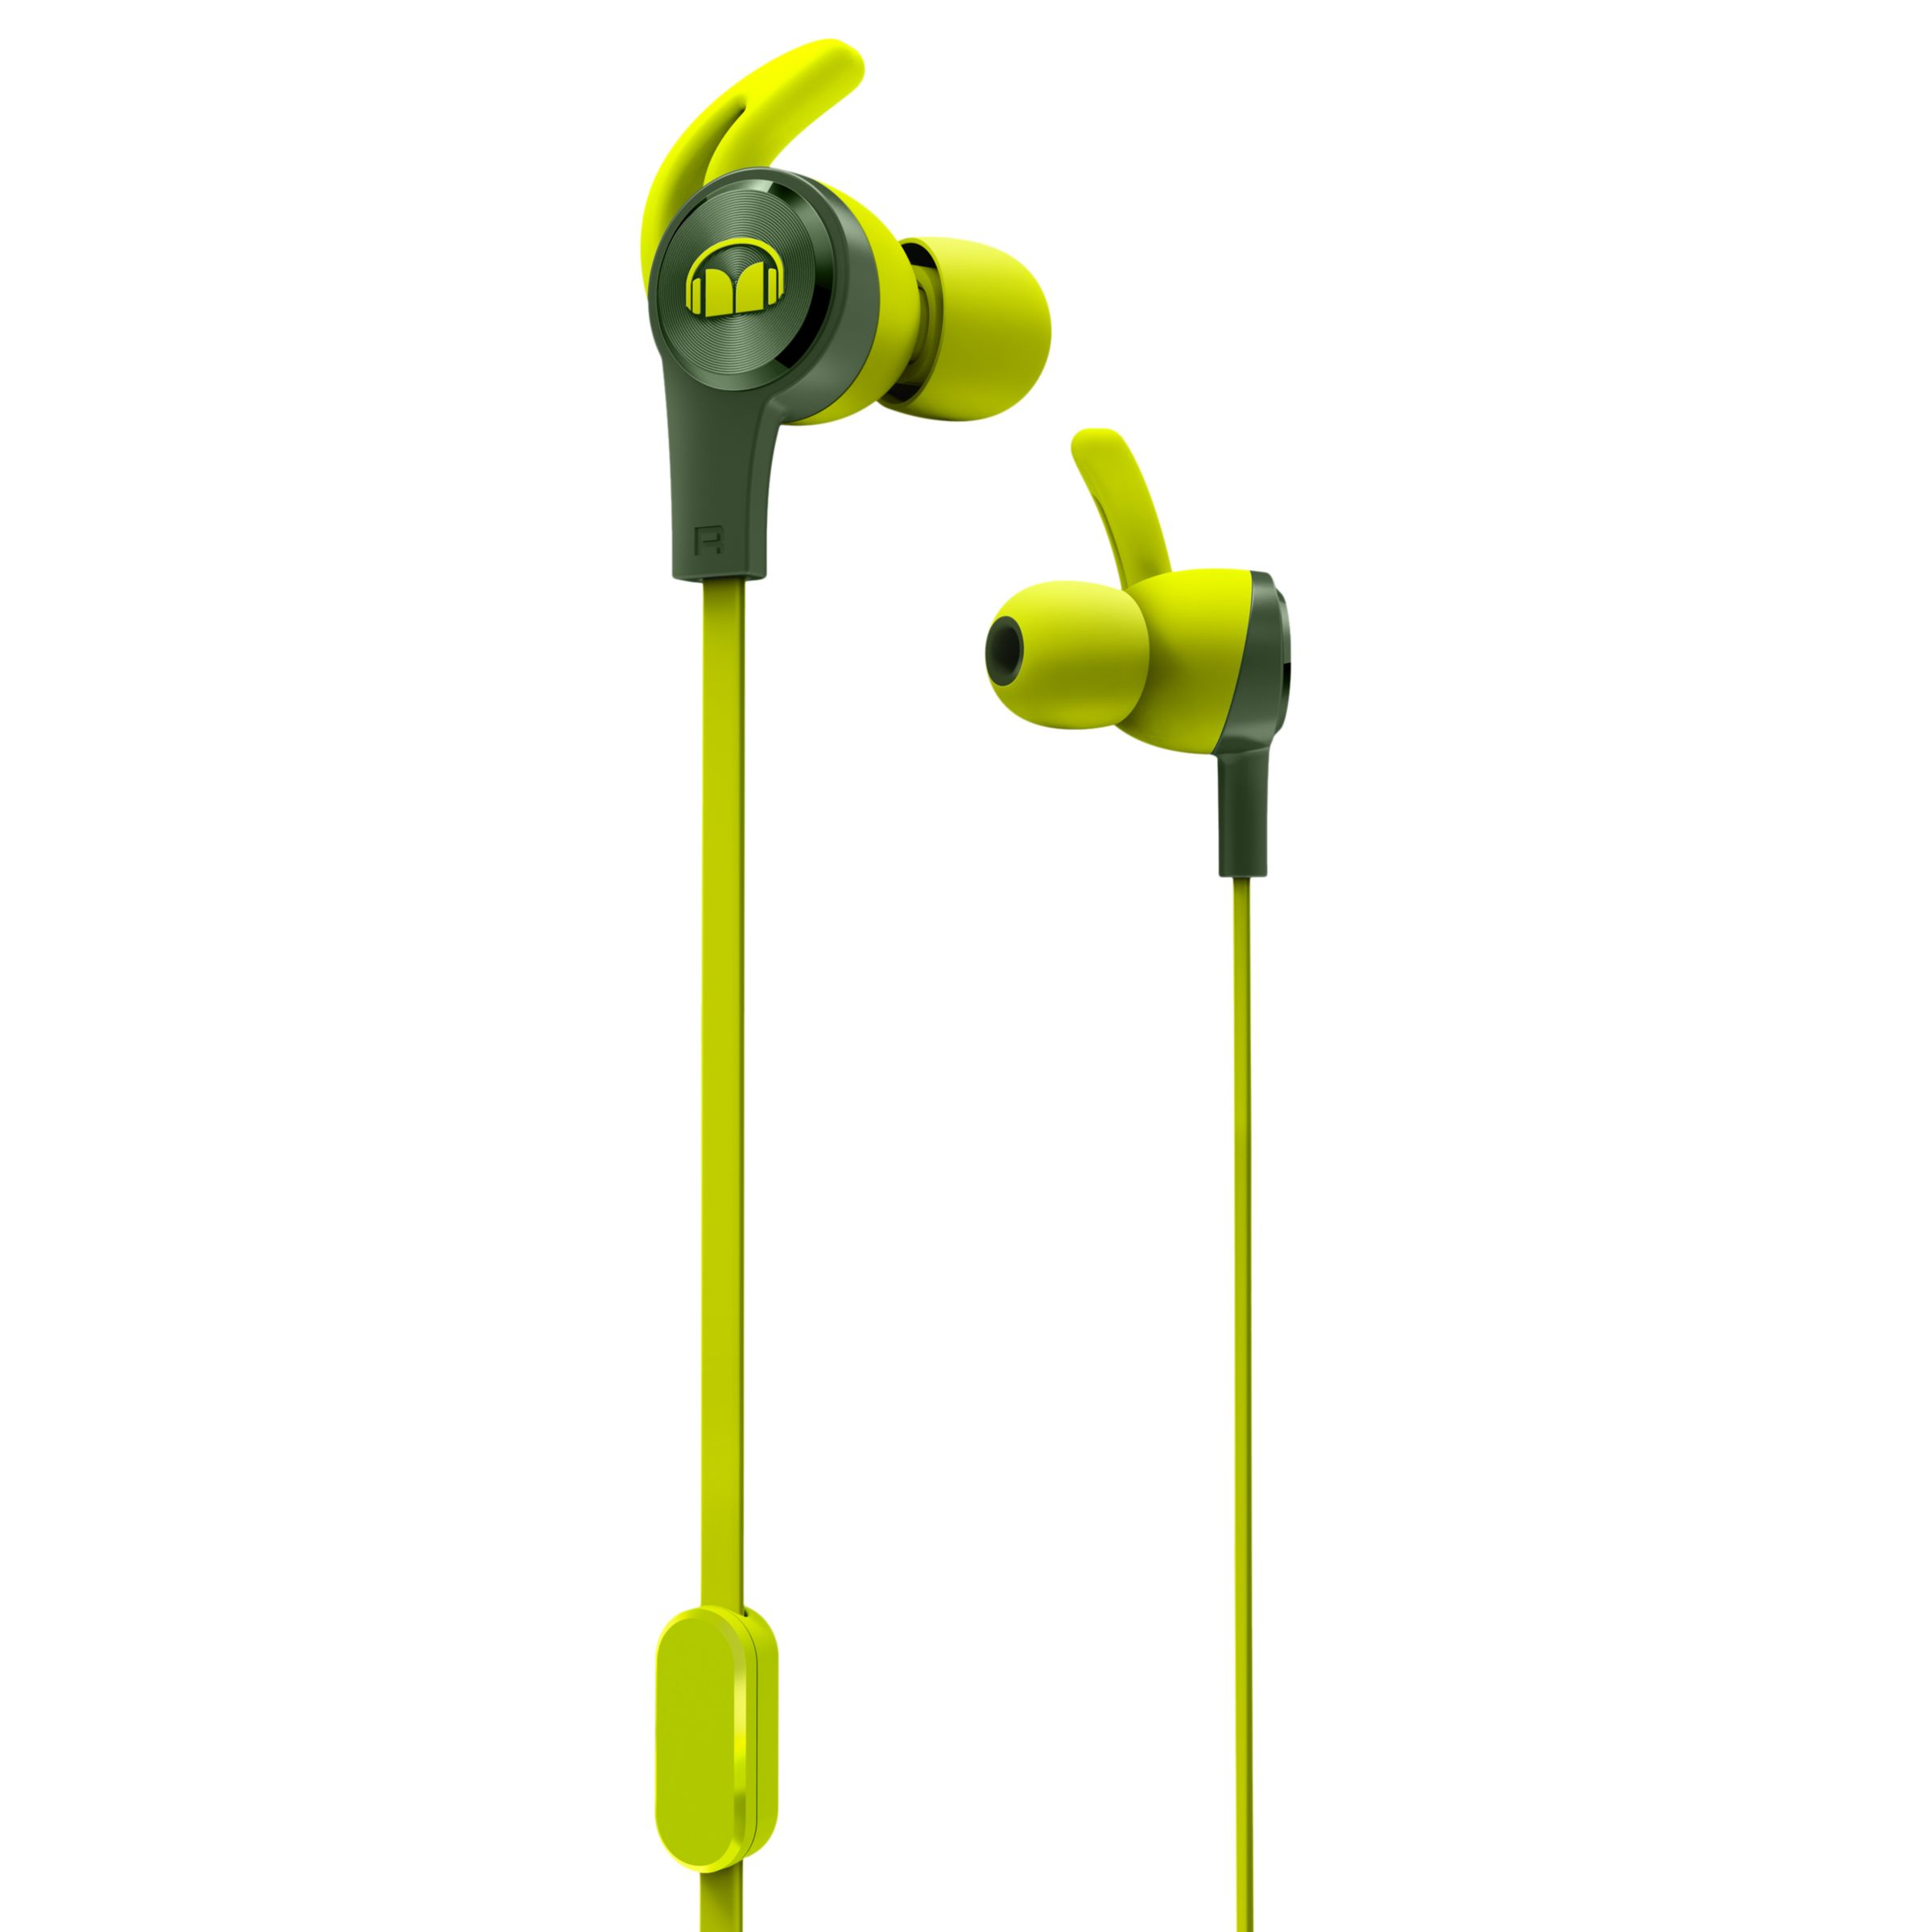 Monster Monster iSport Achieve In-Ear Headphones with ControlTalk Mic/Remote